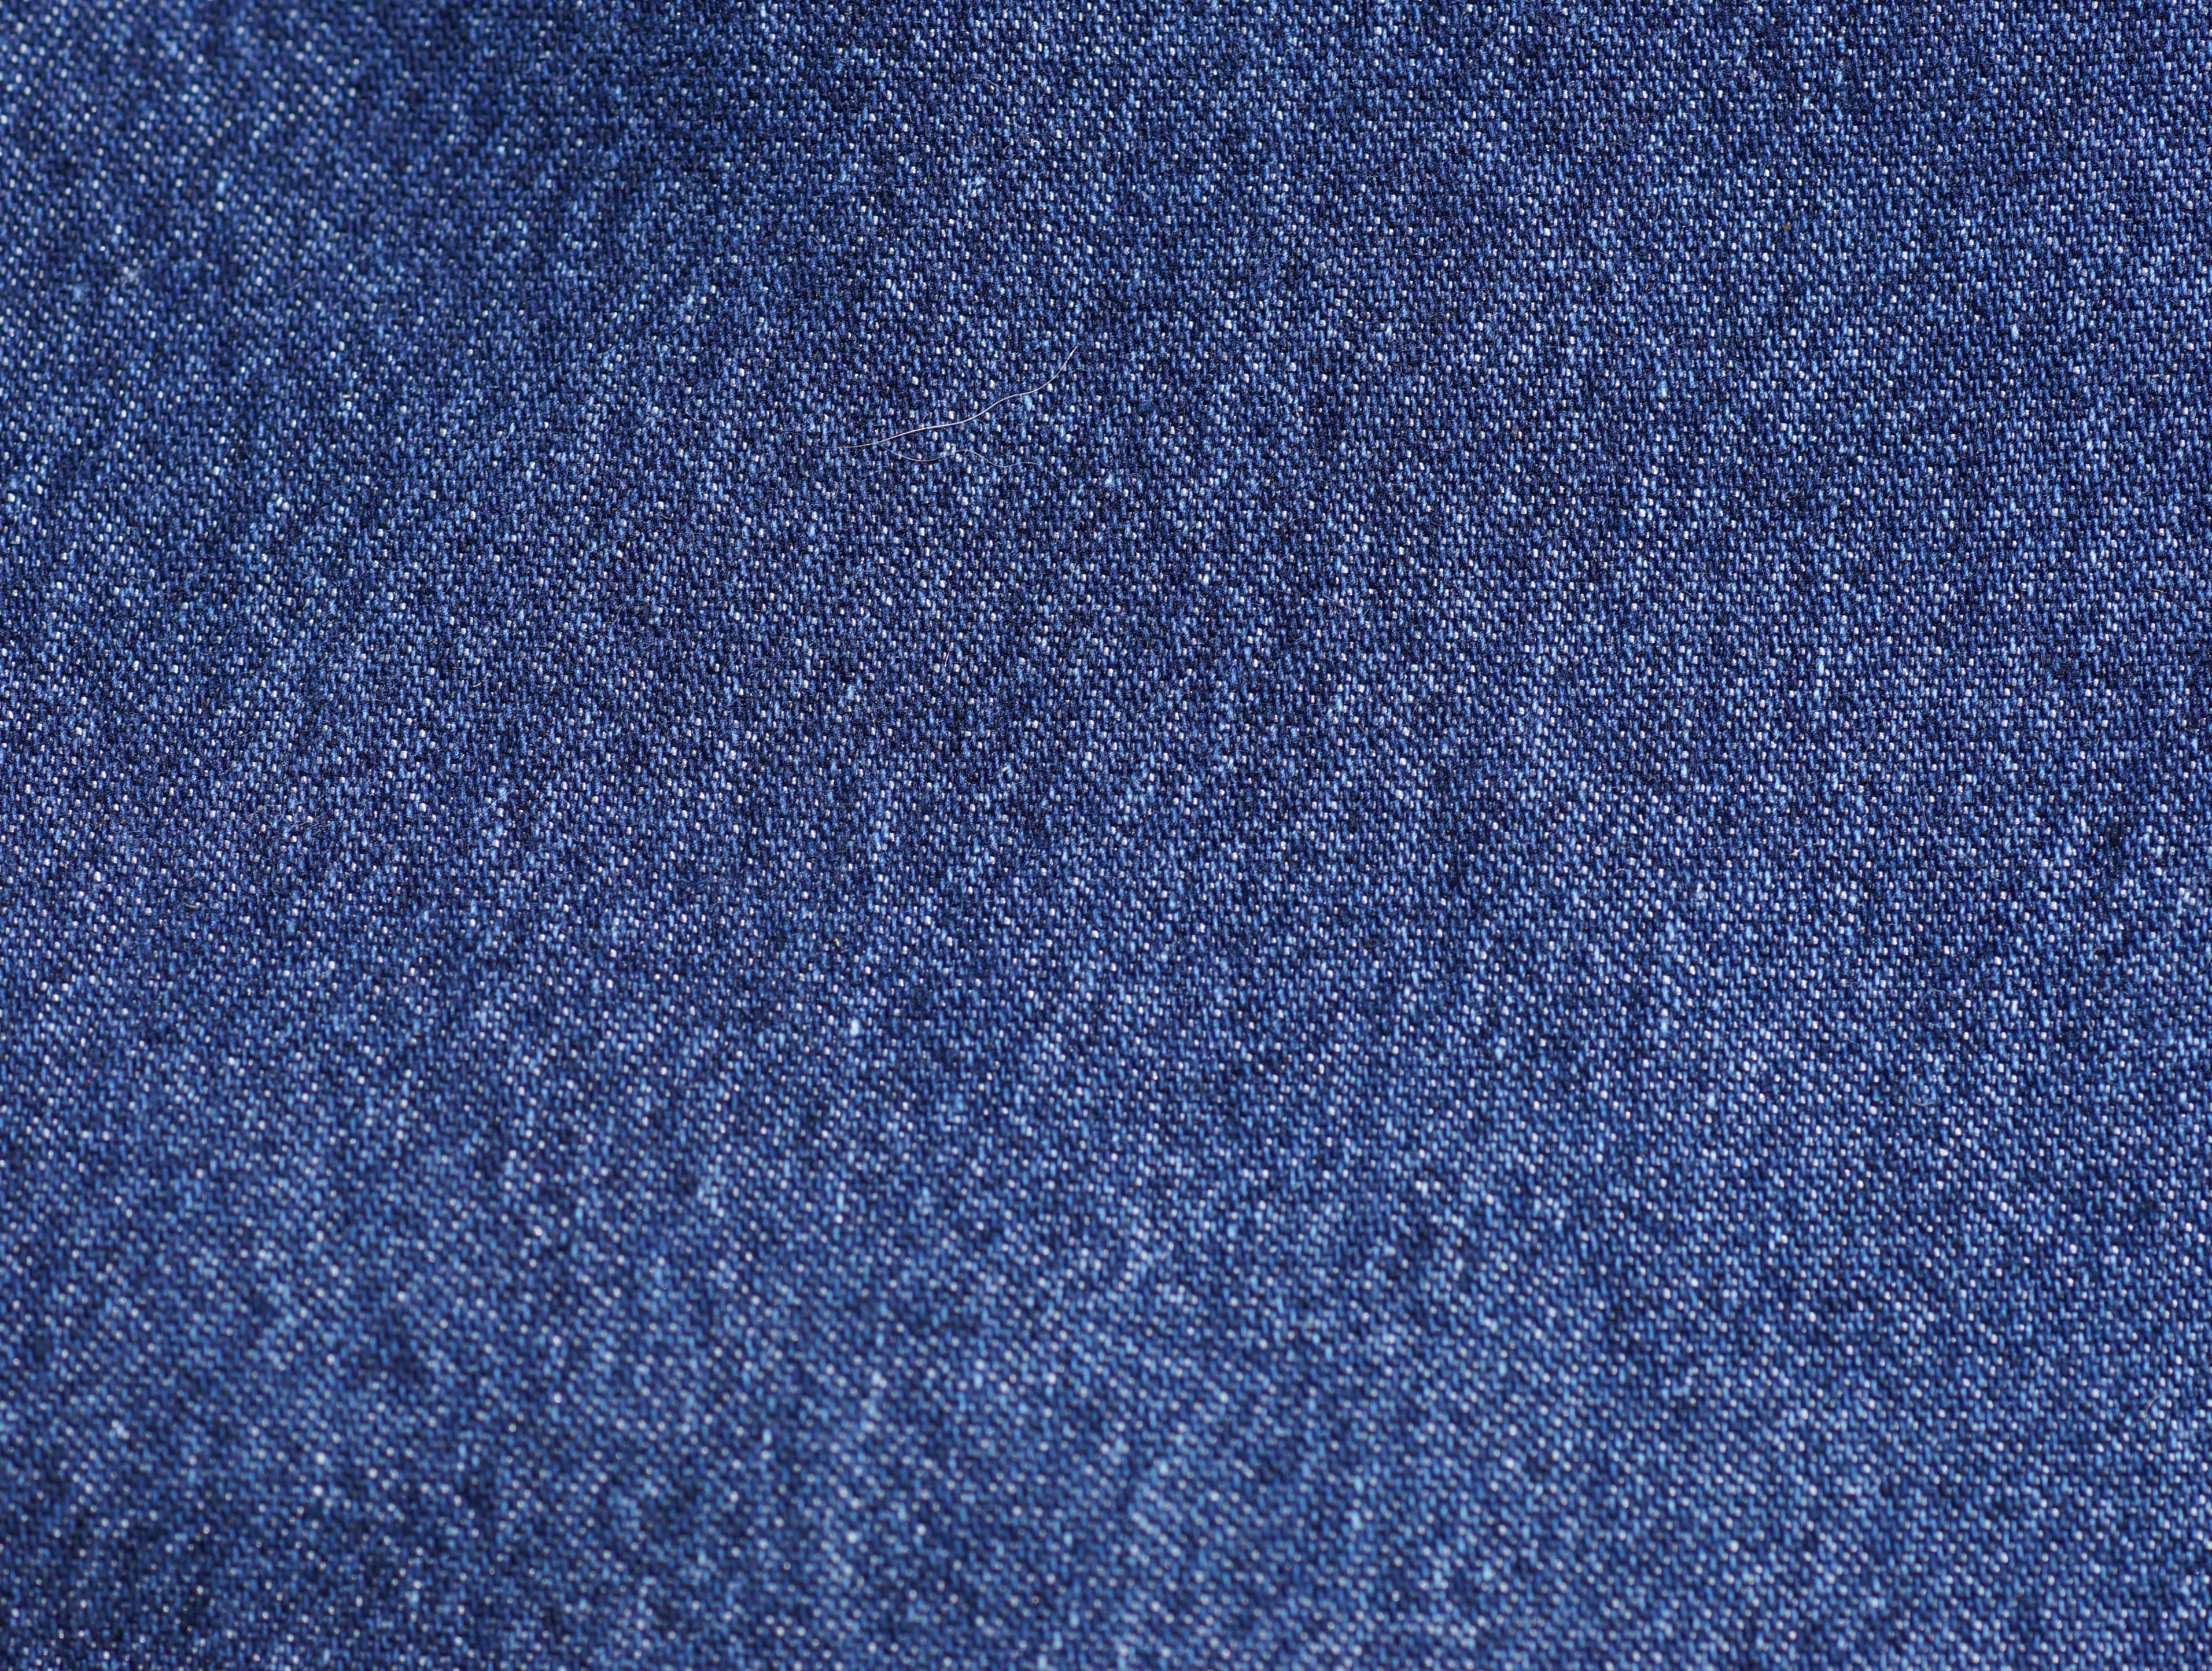 Denim Texture Image Stock